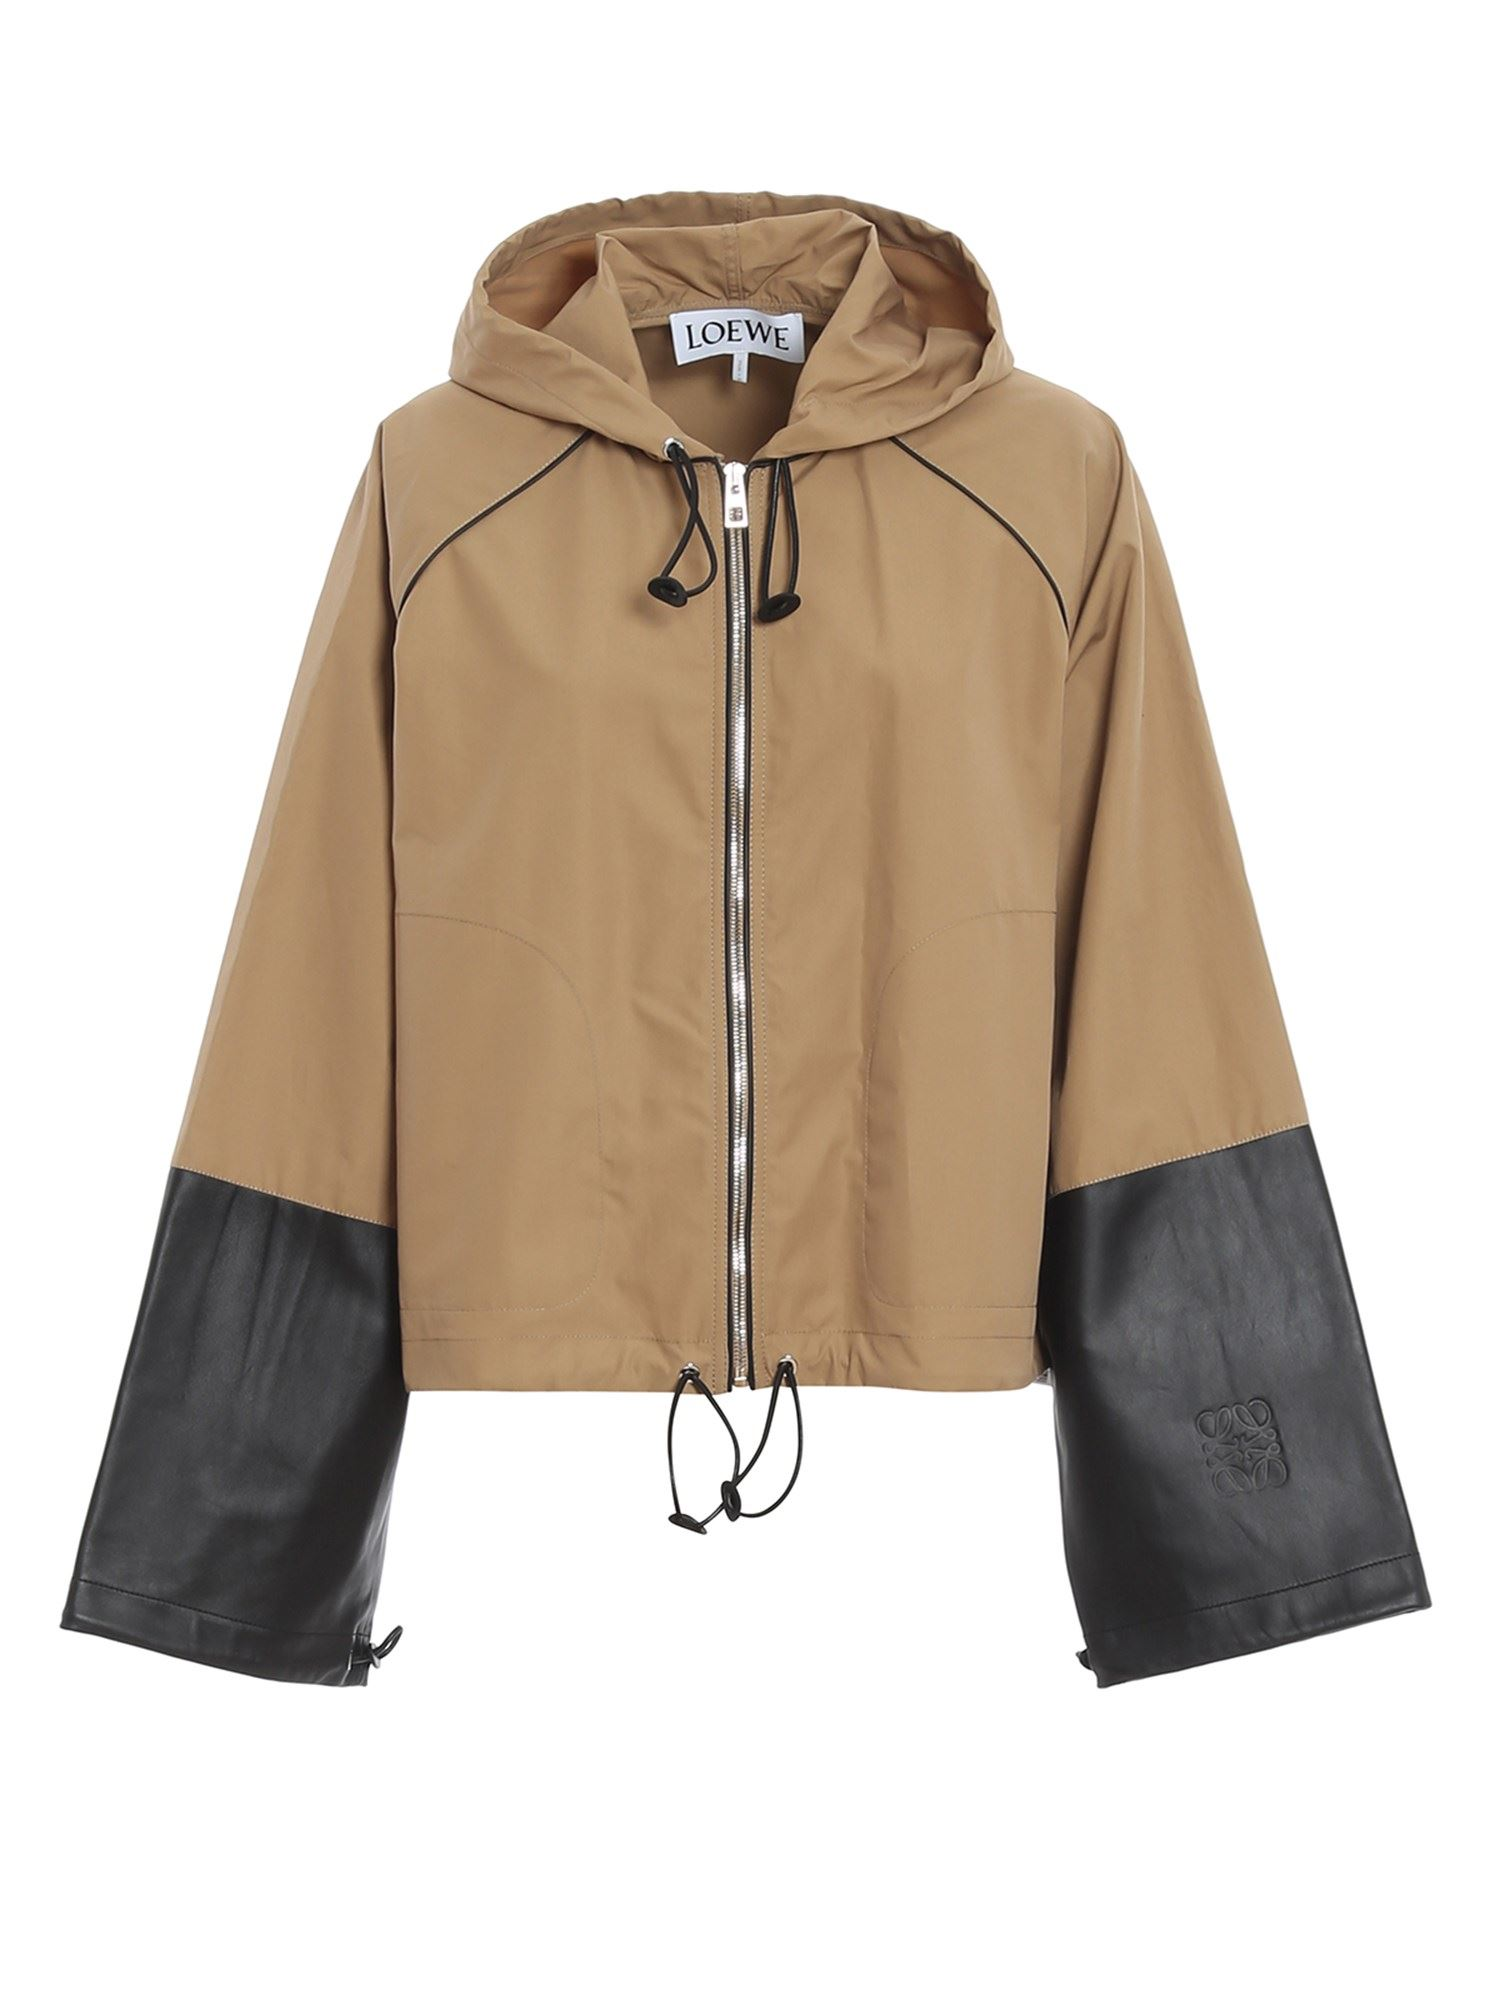 Loewe HOODED JACKET WITH CALFSKIN CUFFS IN BEIGE